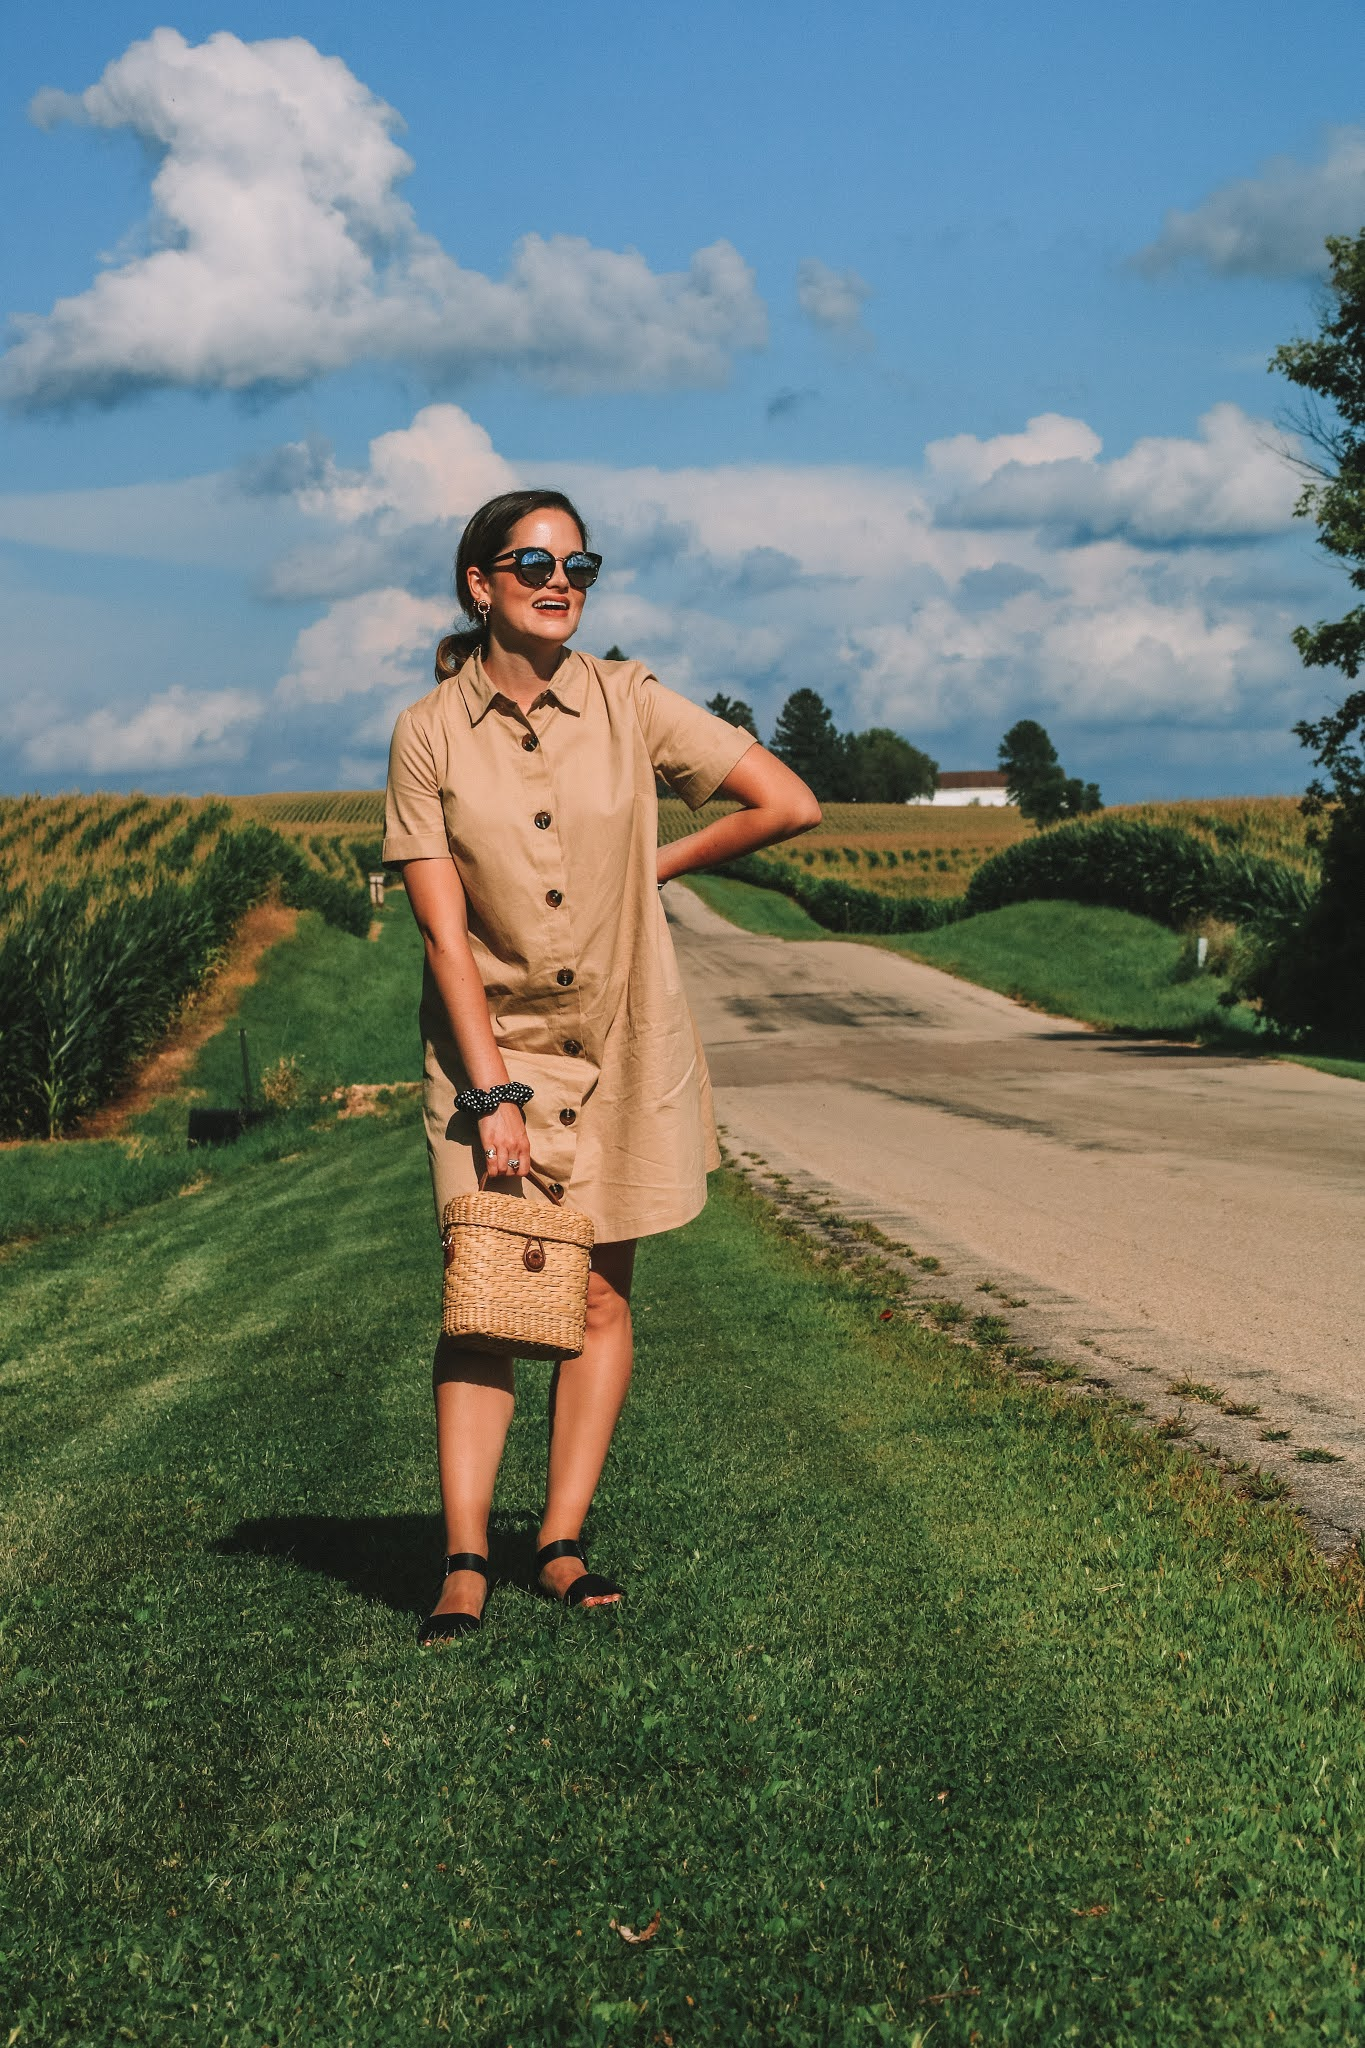 Fashion blogger Kathleen Harper doing a rural photo shoot in the cornfields of Illinois.